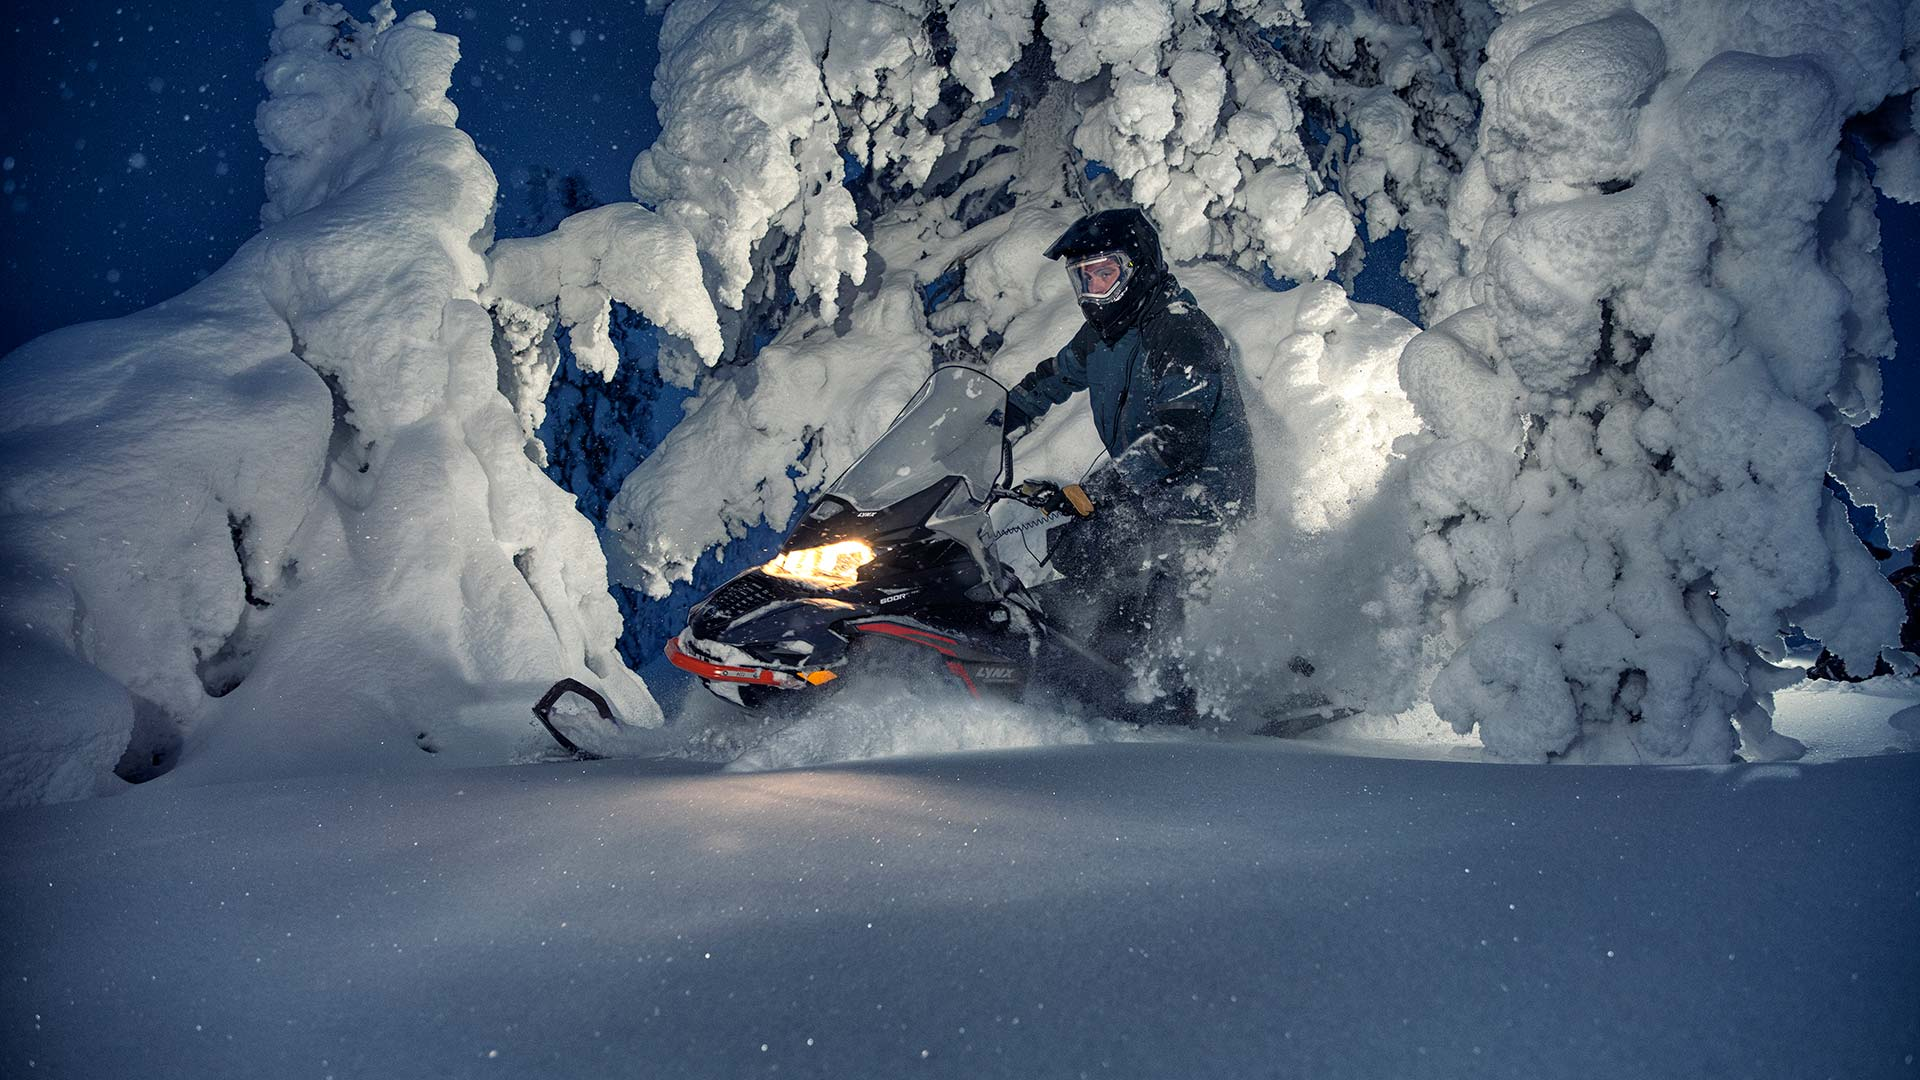 Lynx Commander snowmobile riding in Arctic snowy forest